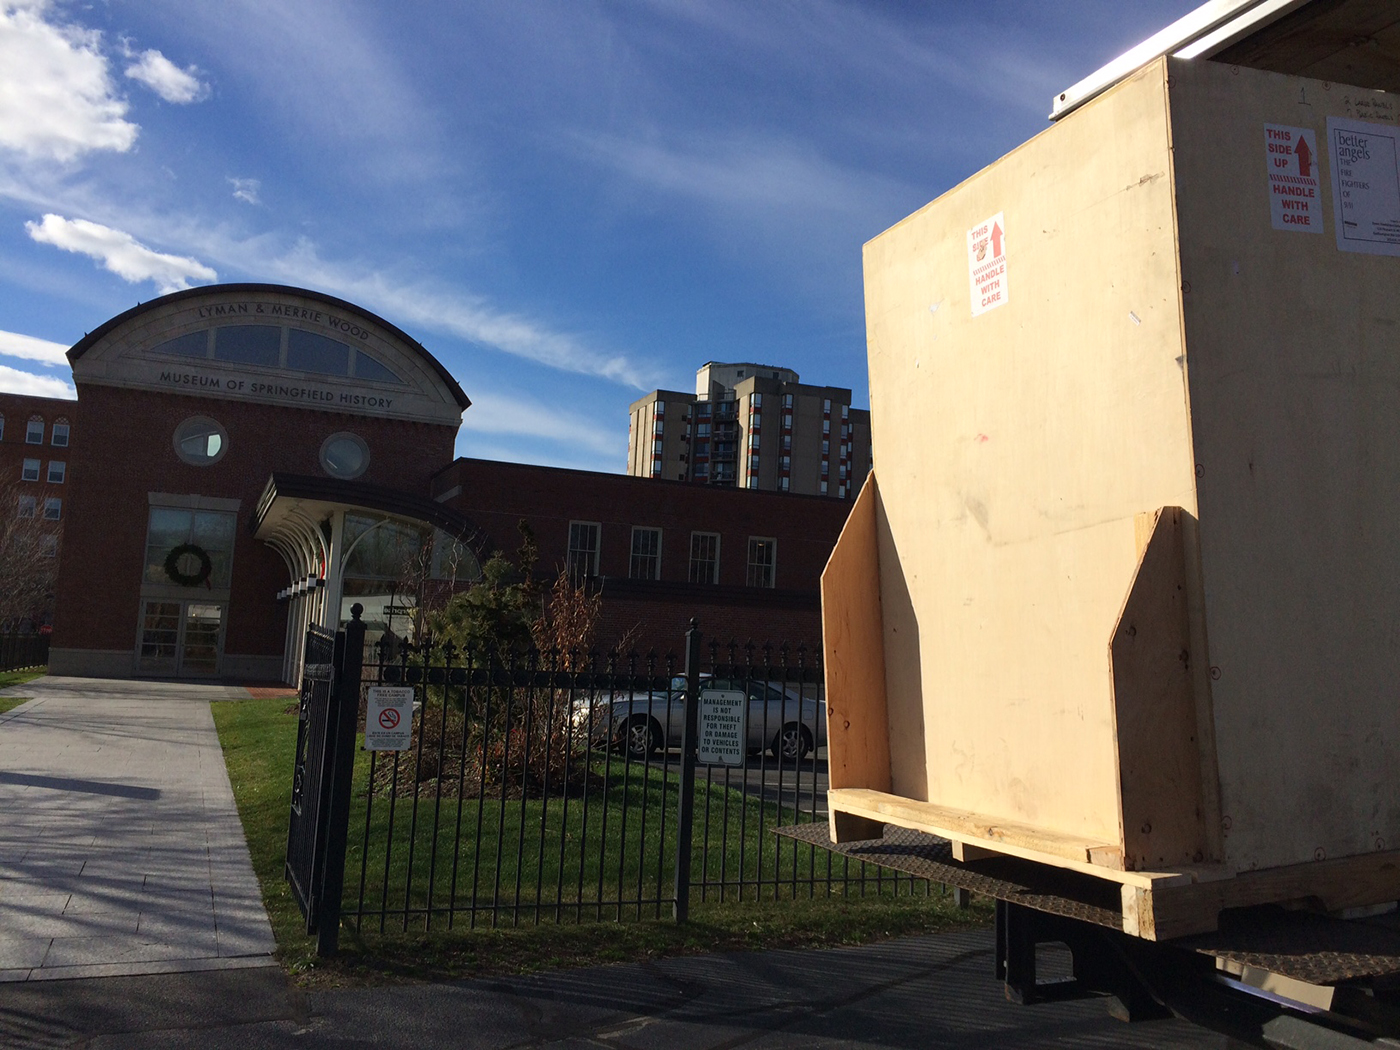 BA Crate1 on Liftgate